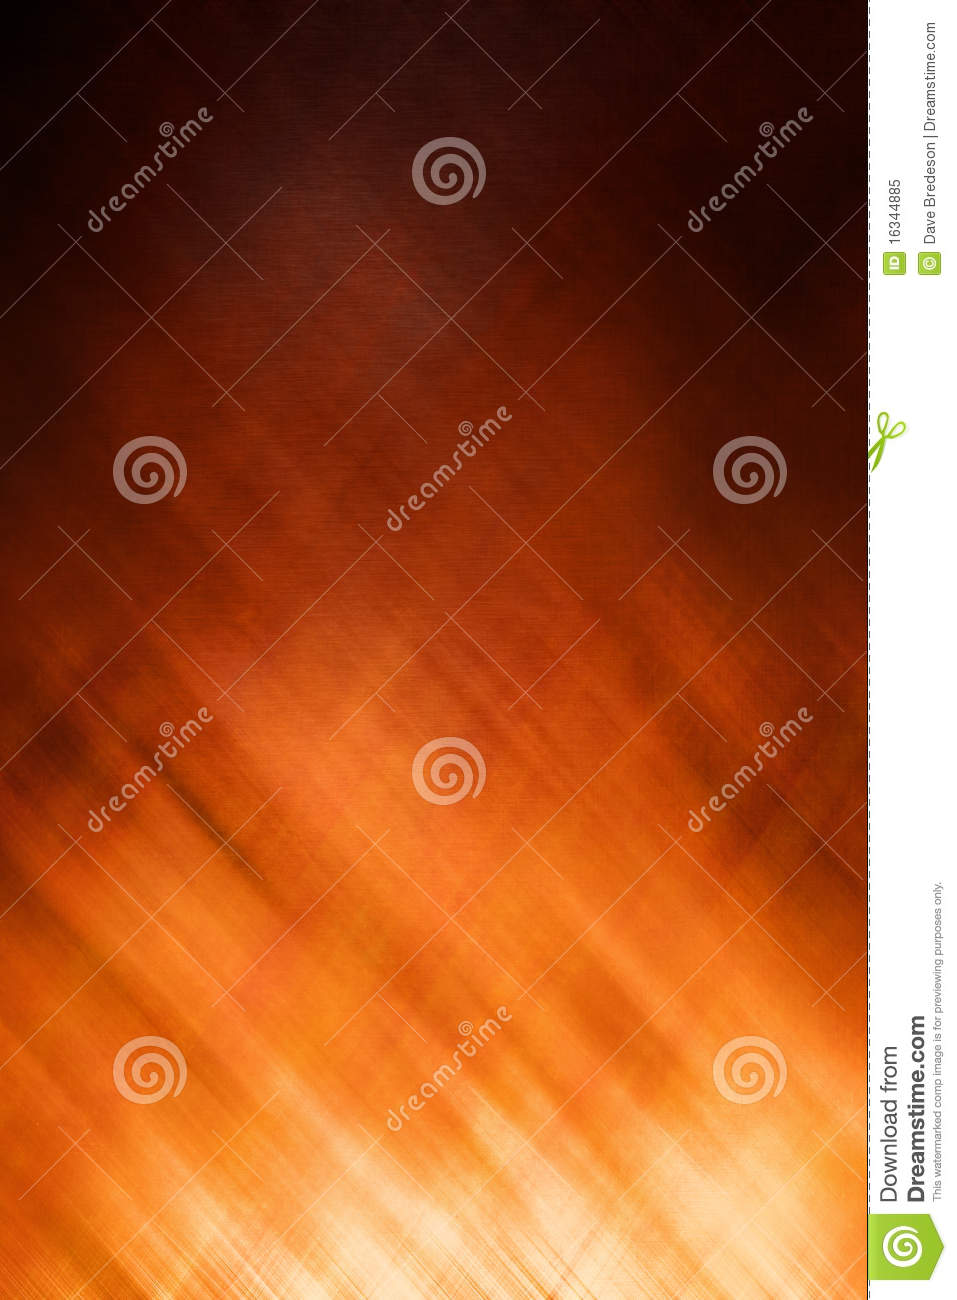 Abstract Warm Crossed Texture Background